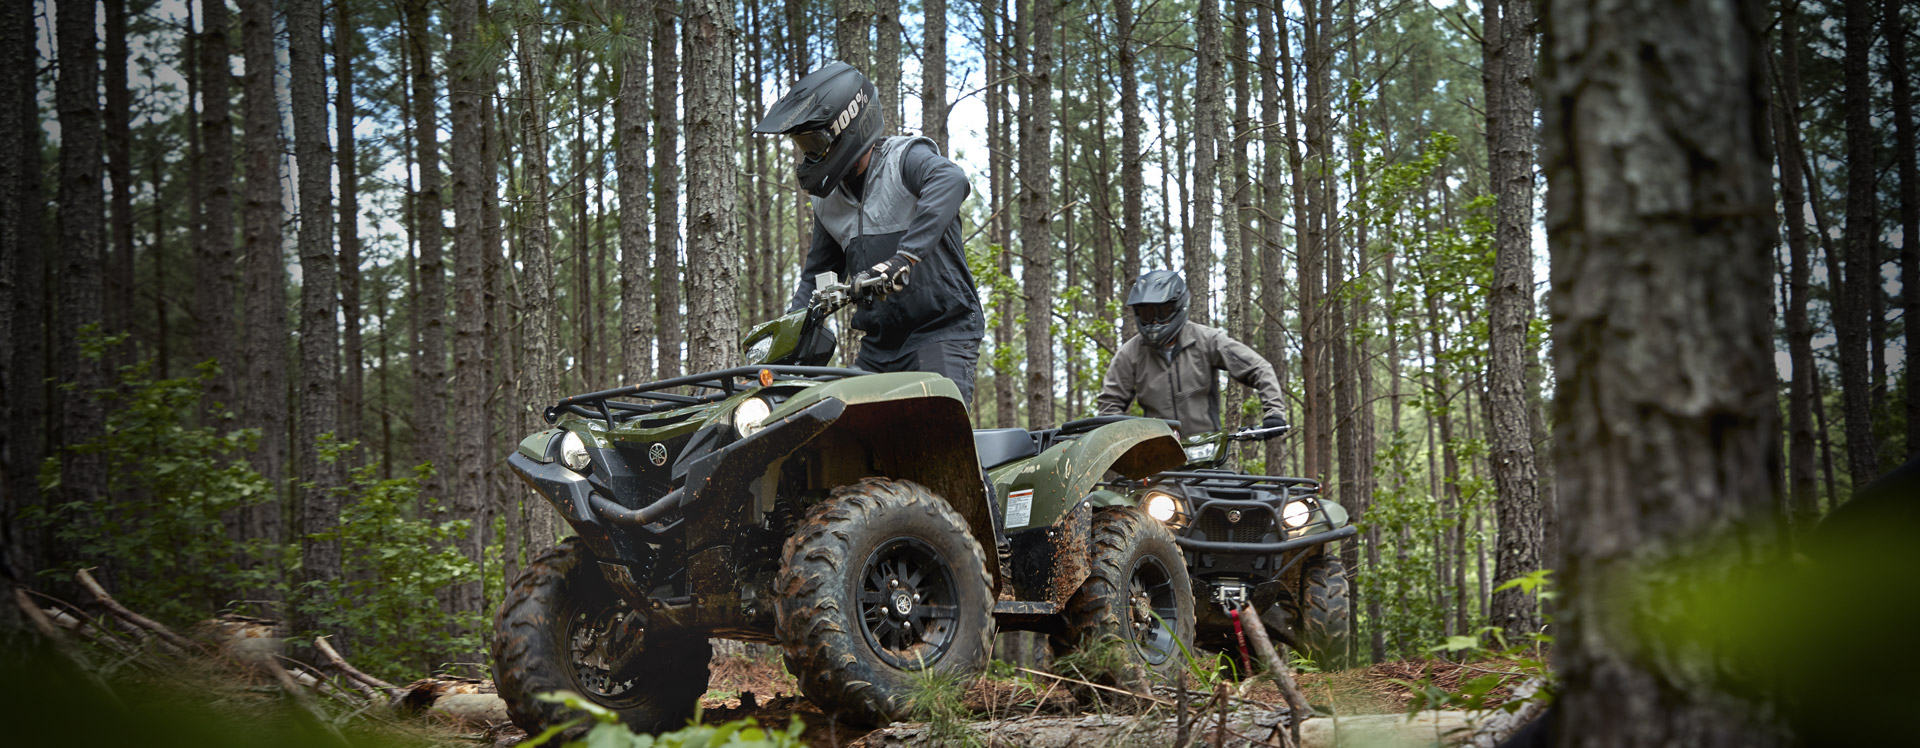 2020 Yamaha Grizzly-Eps